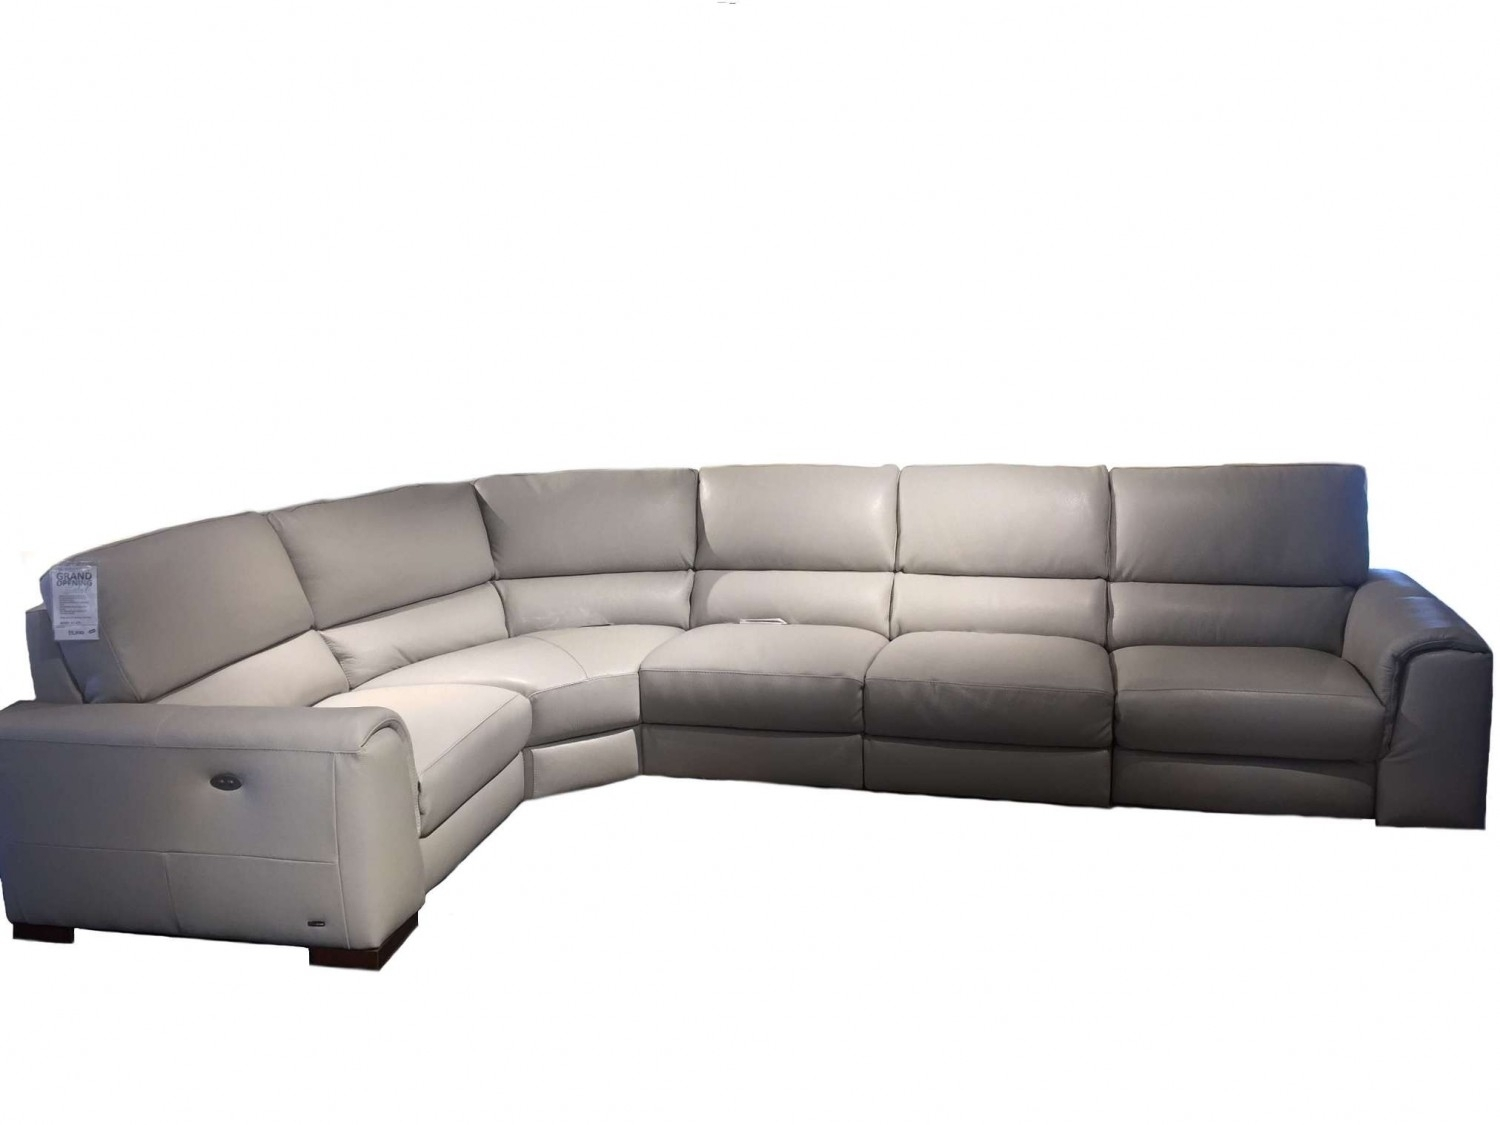 Natuzzi Editions Davide Leather Sectional | Leather Sectional Regarding Natuzzi Sectional Sofas (Photo 8 of 10)